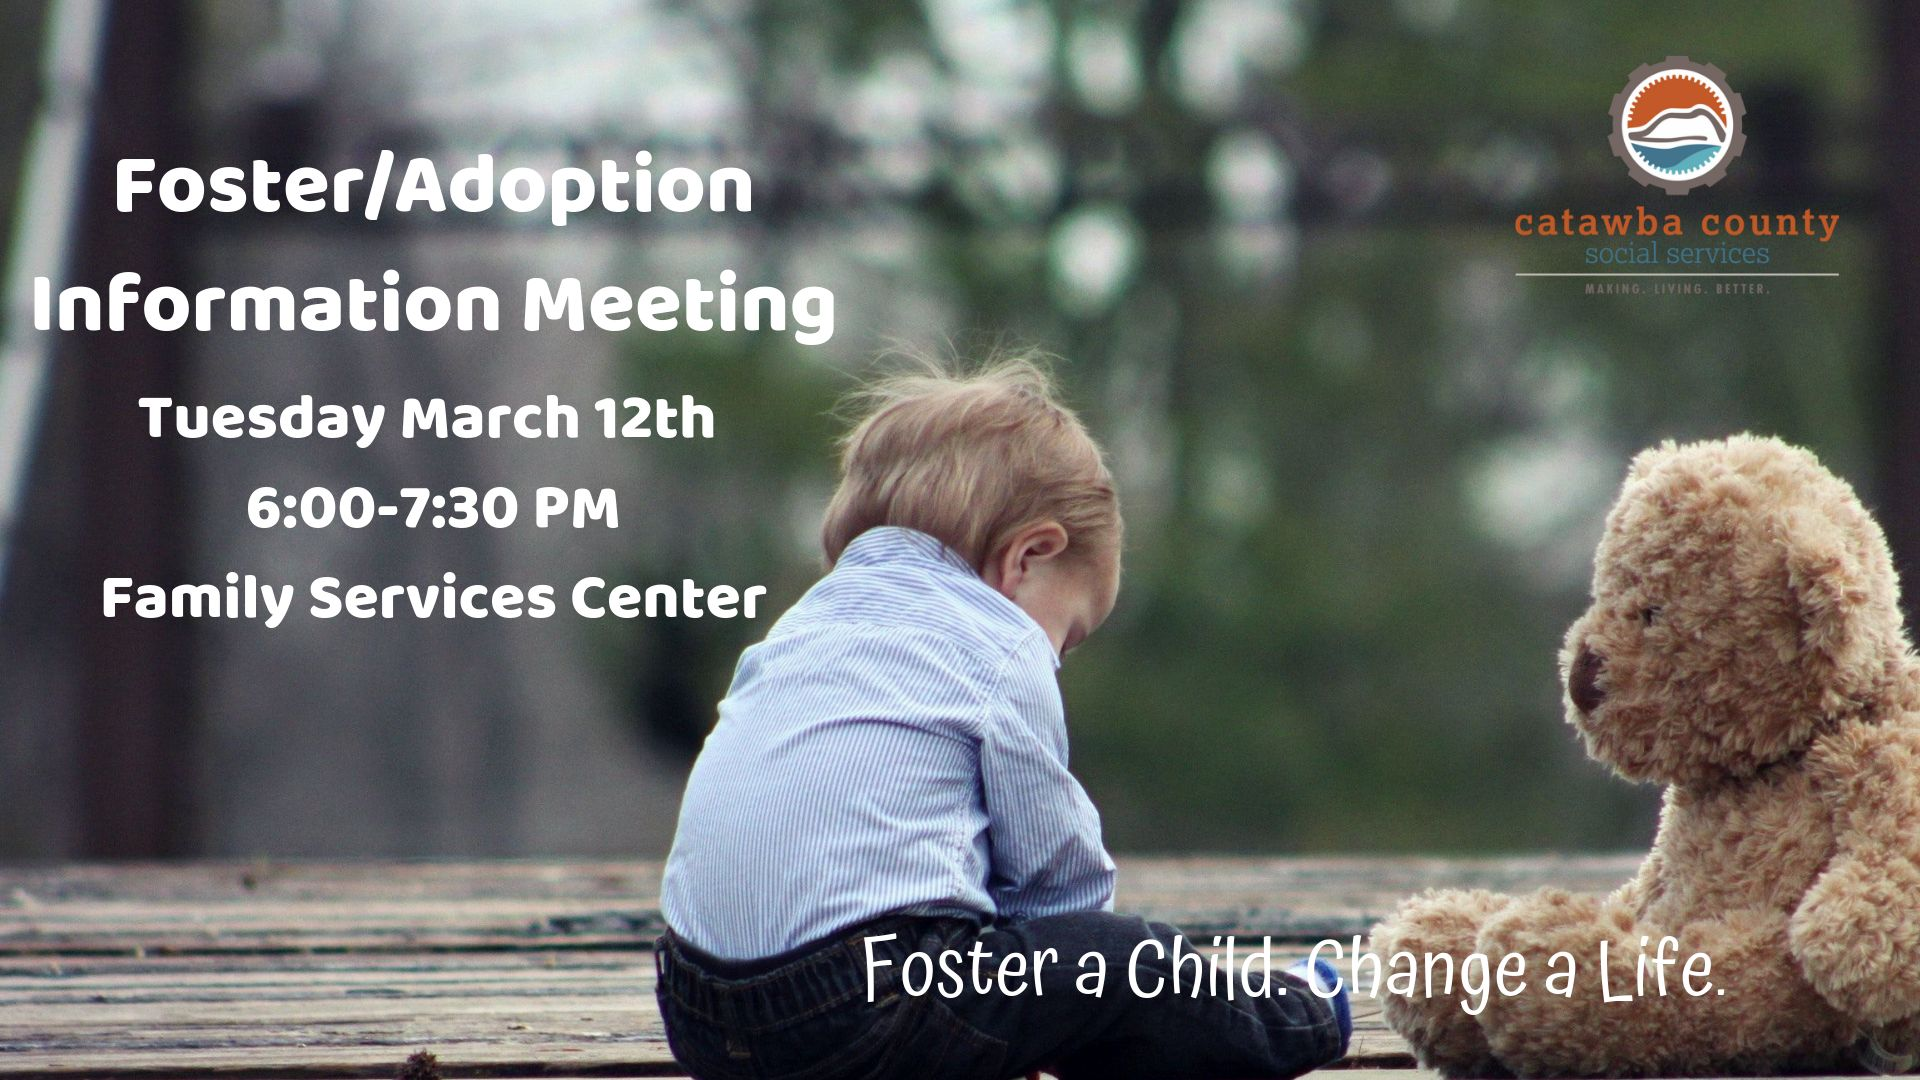 Foster/Adoption Information Meeting - 3/12/19